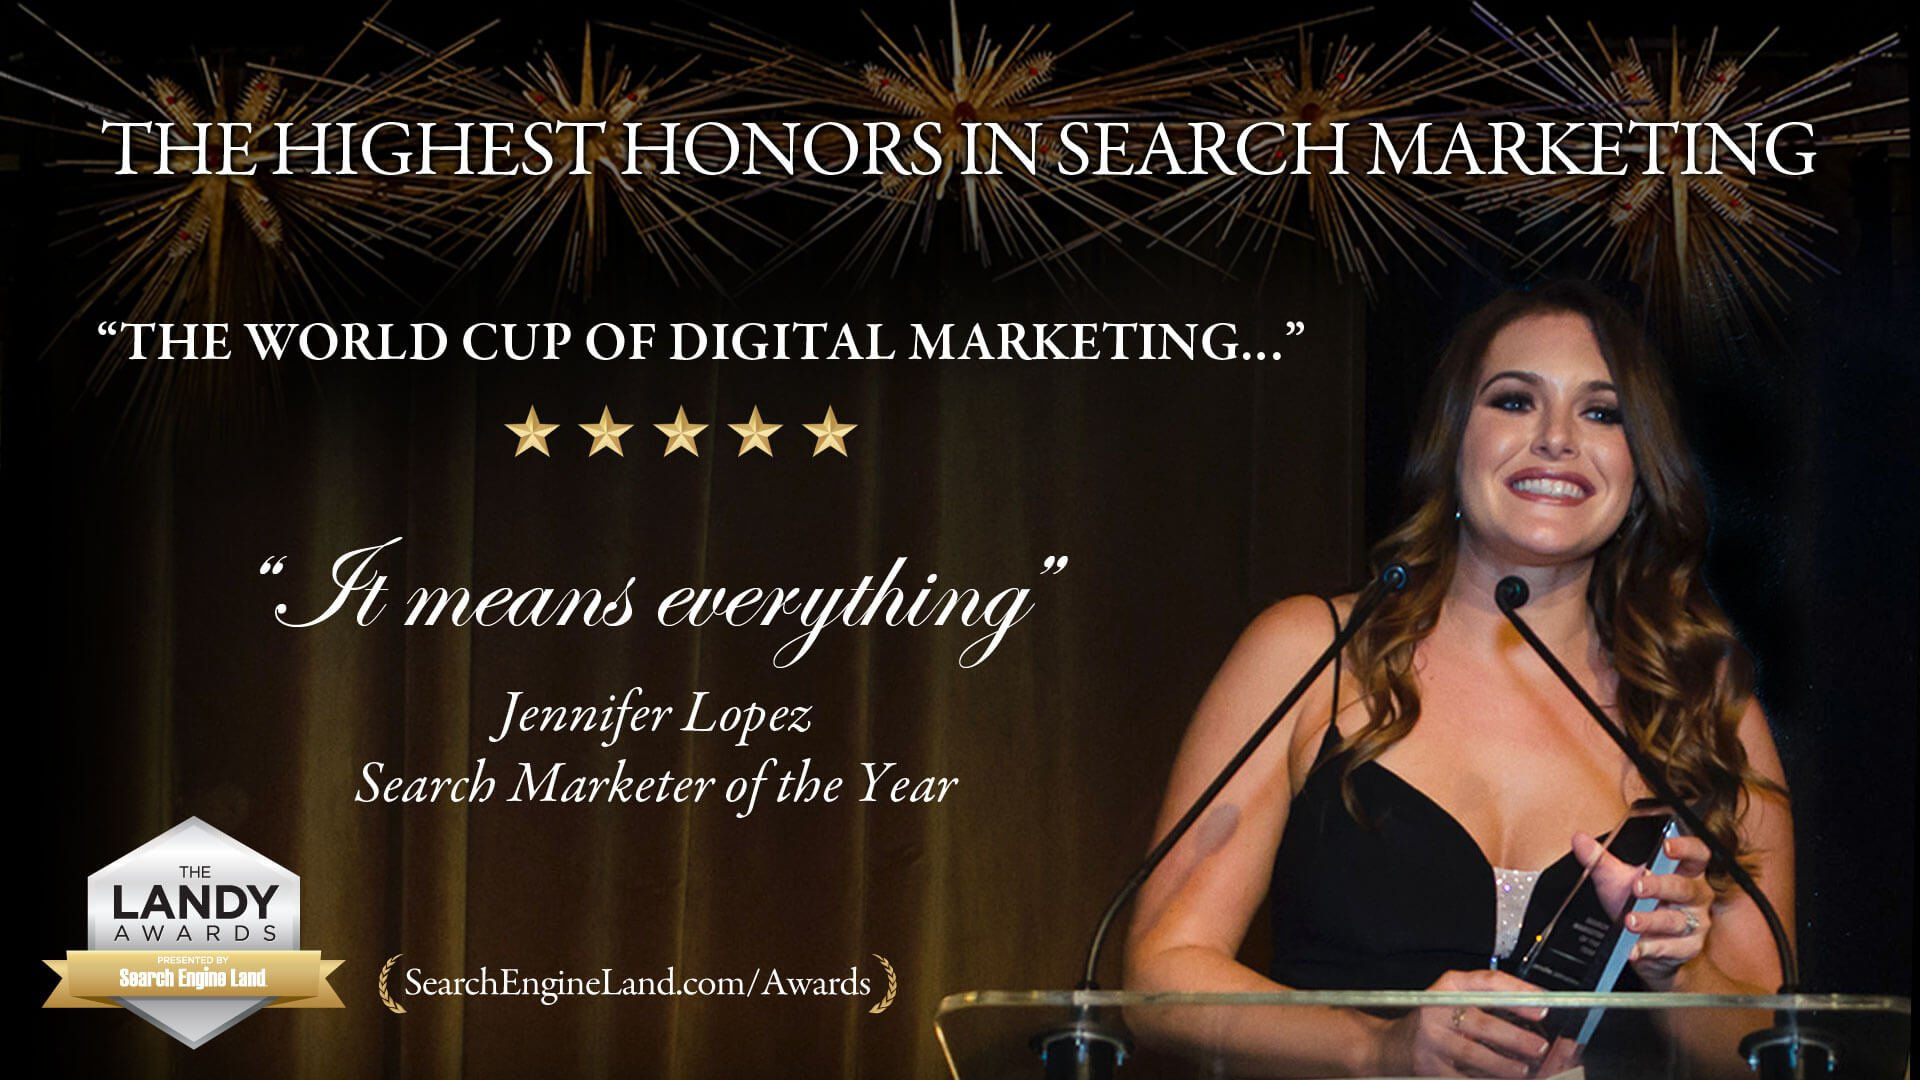 What does it mean to win a Search Engine Land Award?